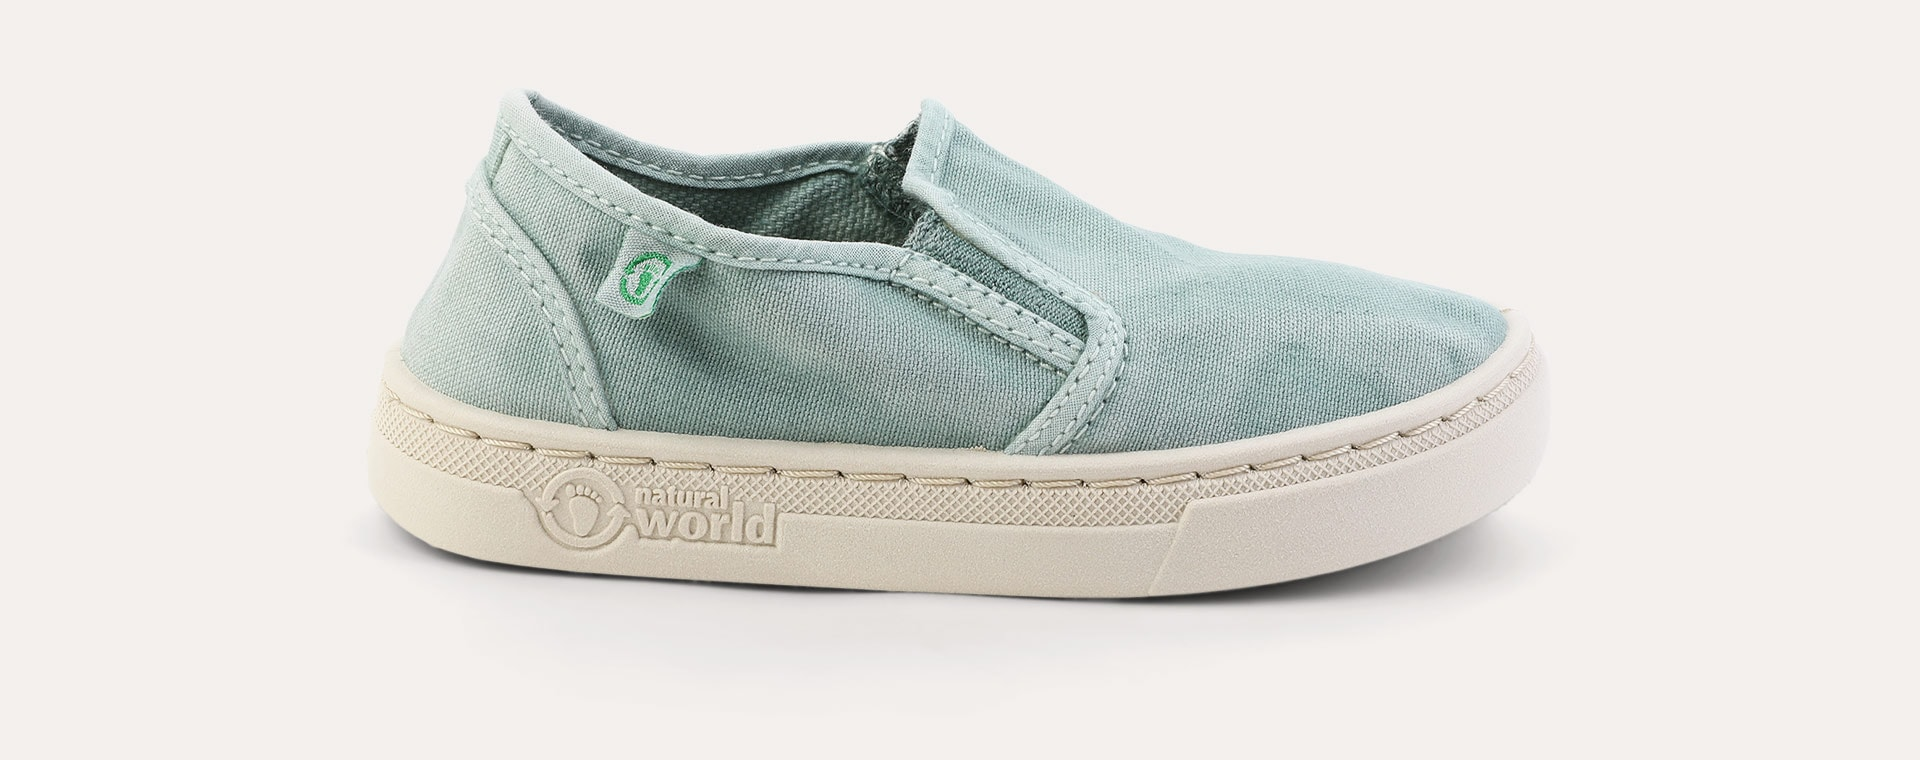 Aqua Natural World Canvas Slip-On Shoe